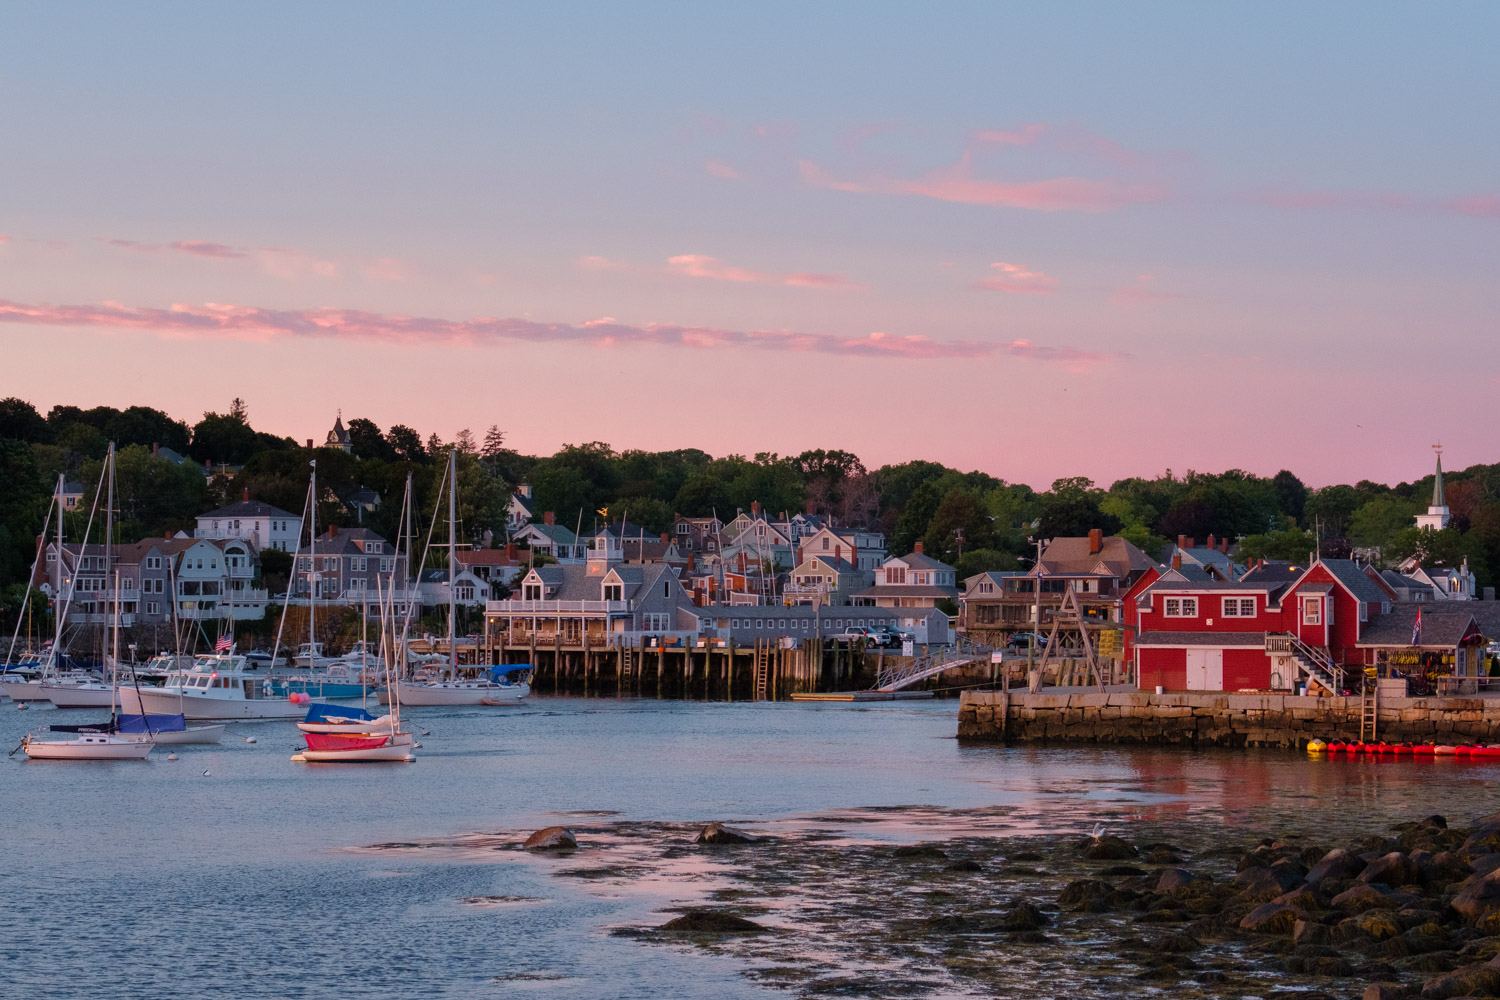 Twilight just before sunrise over the harbor of Rockport, Massachusetts.